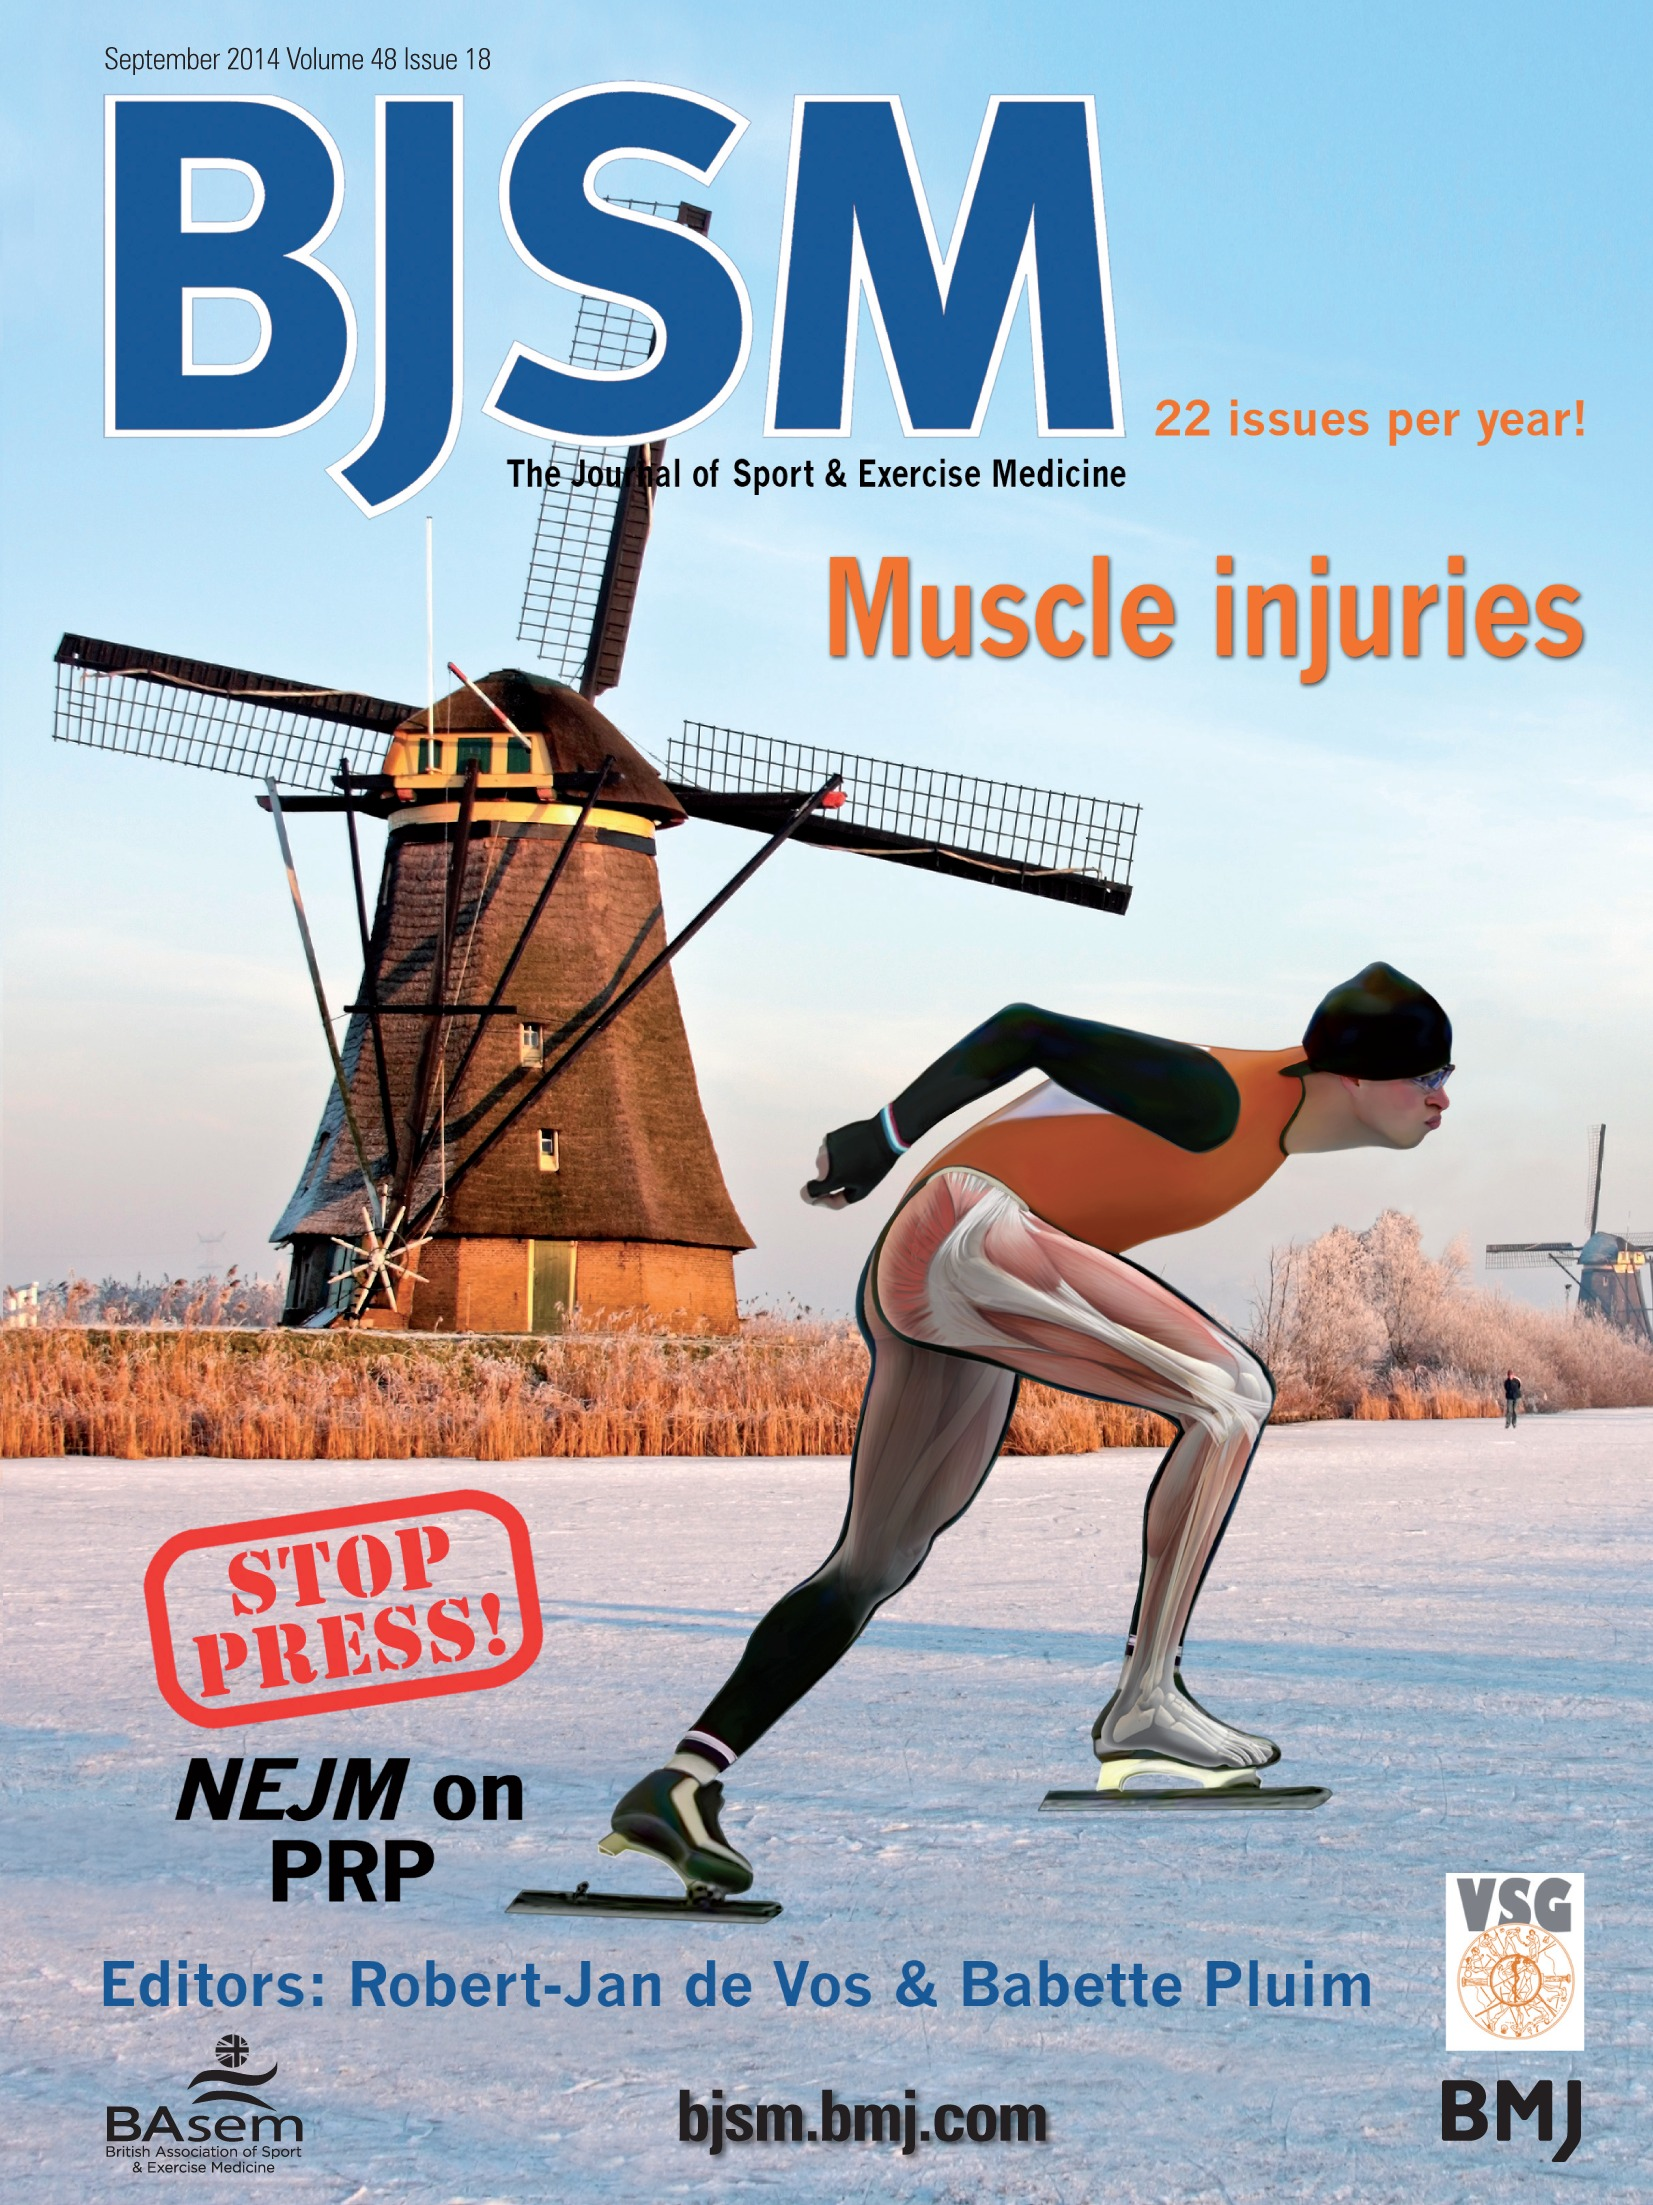 British athletics muscle injury classification: a new grading system